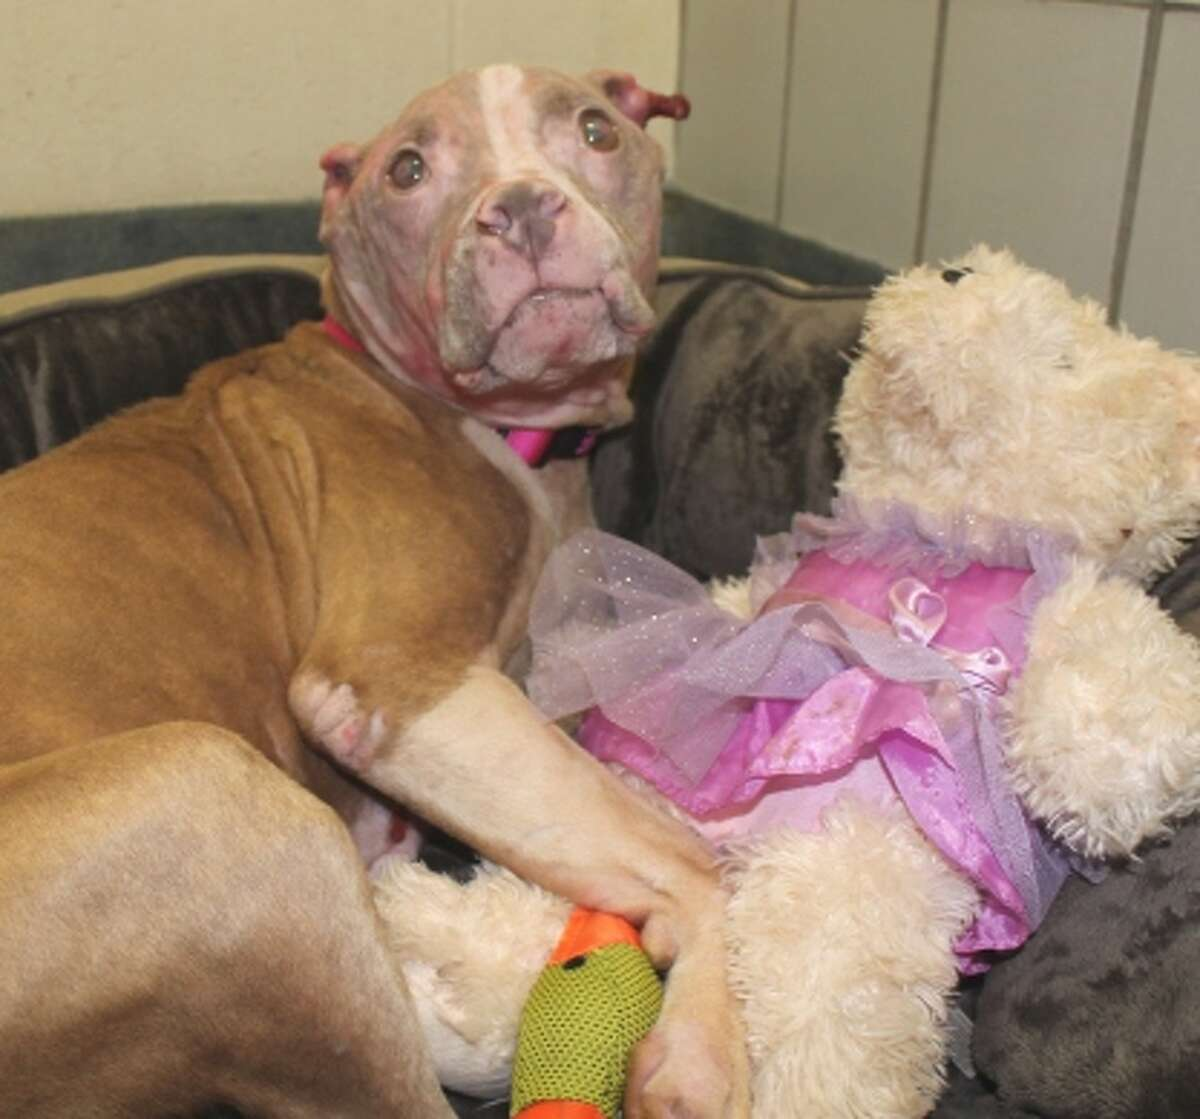 Rosie a 5-year-old pit bull was found with acid burns to her face near the end of July. These more recent photos show what she looks like in August 2015.